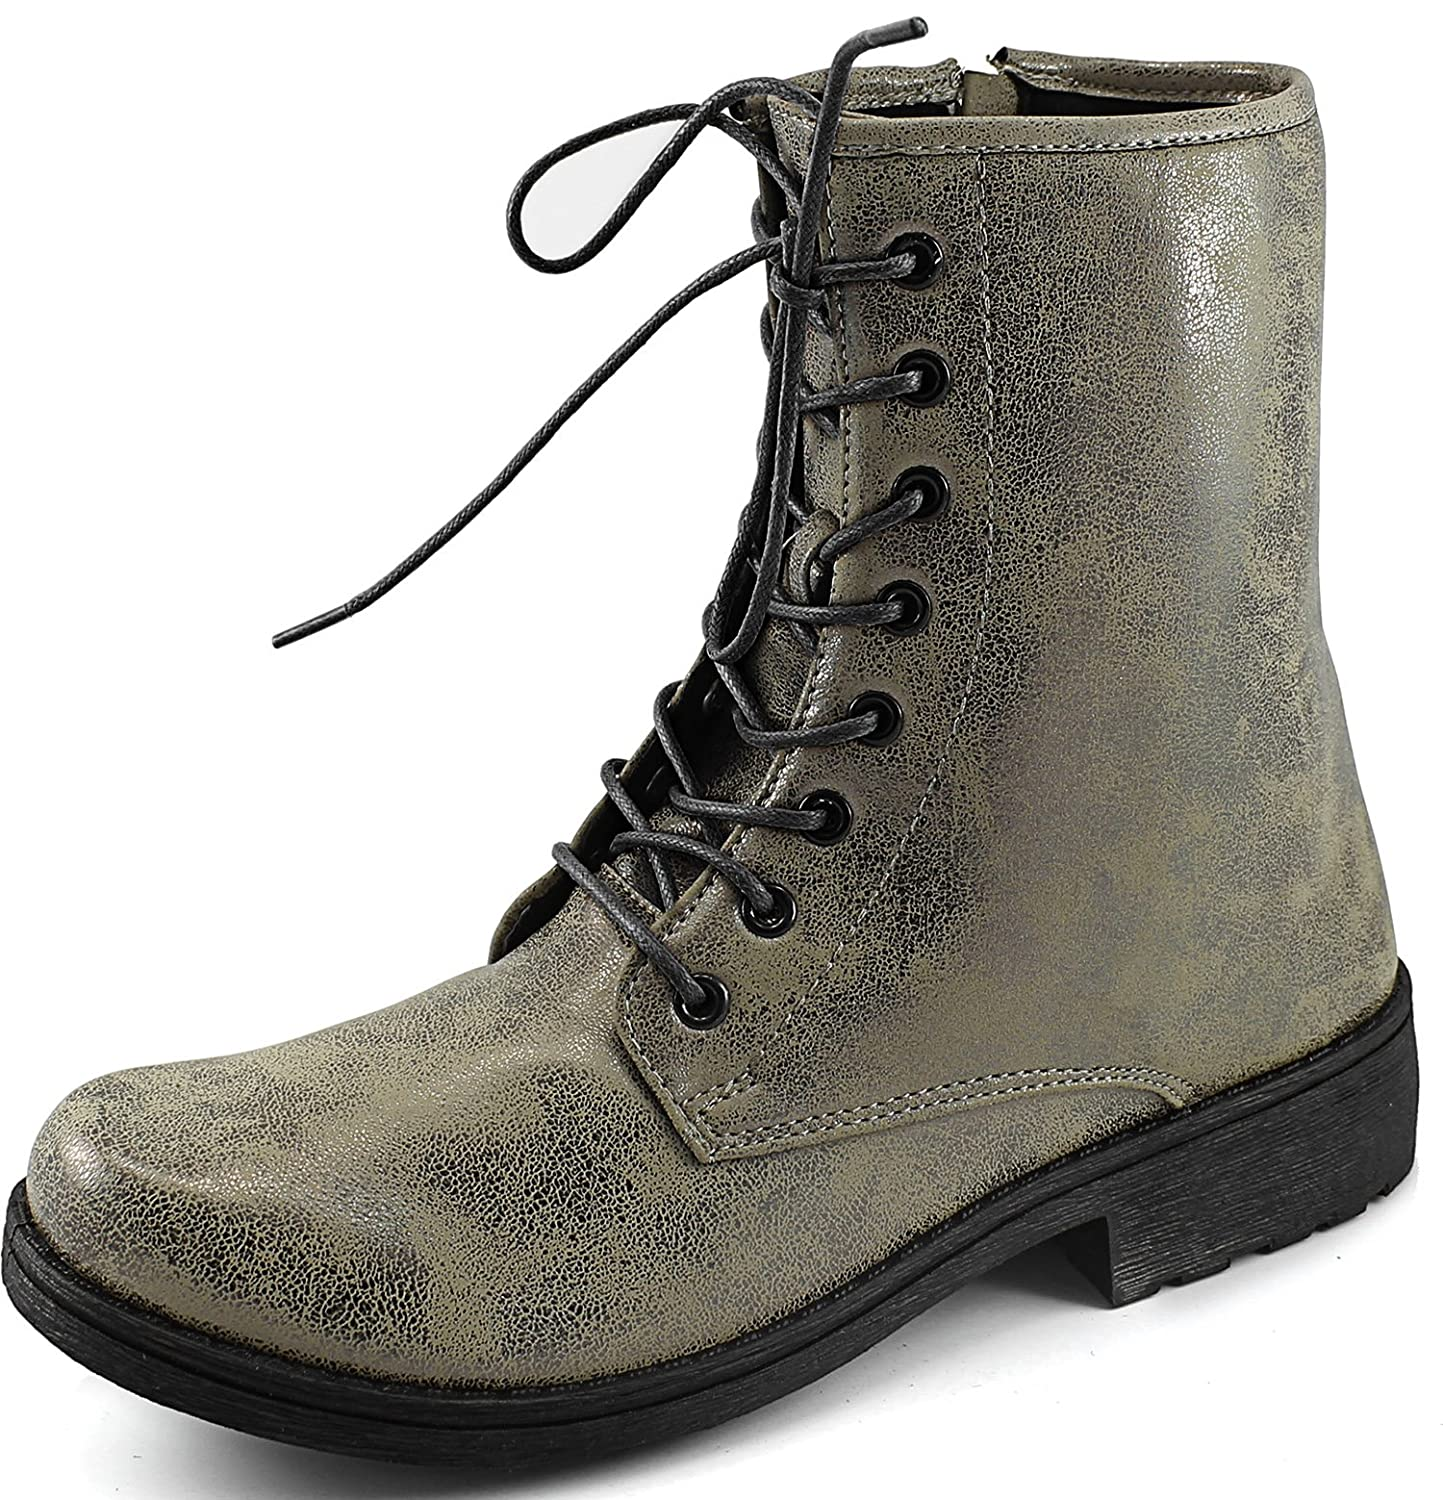 Qupid Womens Womens Ankle Booties Military Combat Lace Up Boot Multi Floral